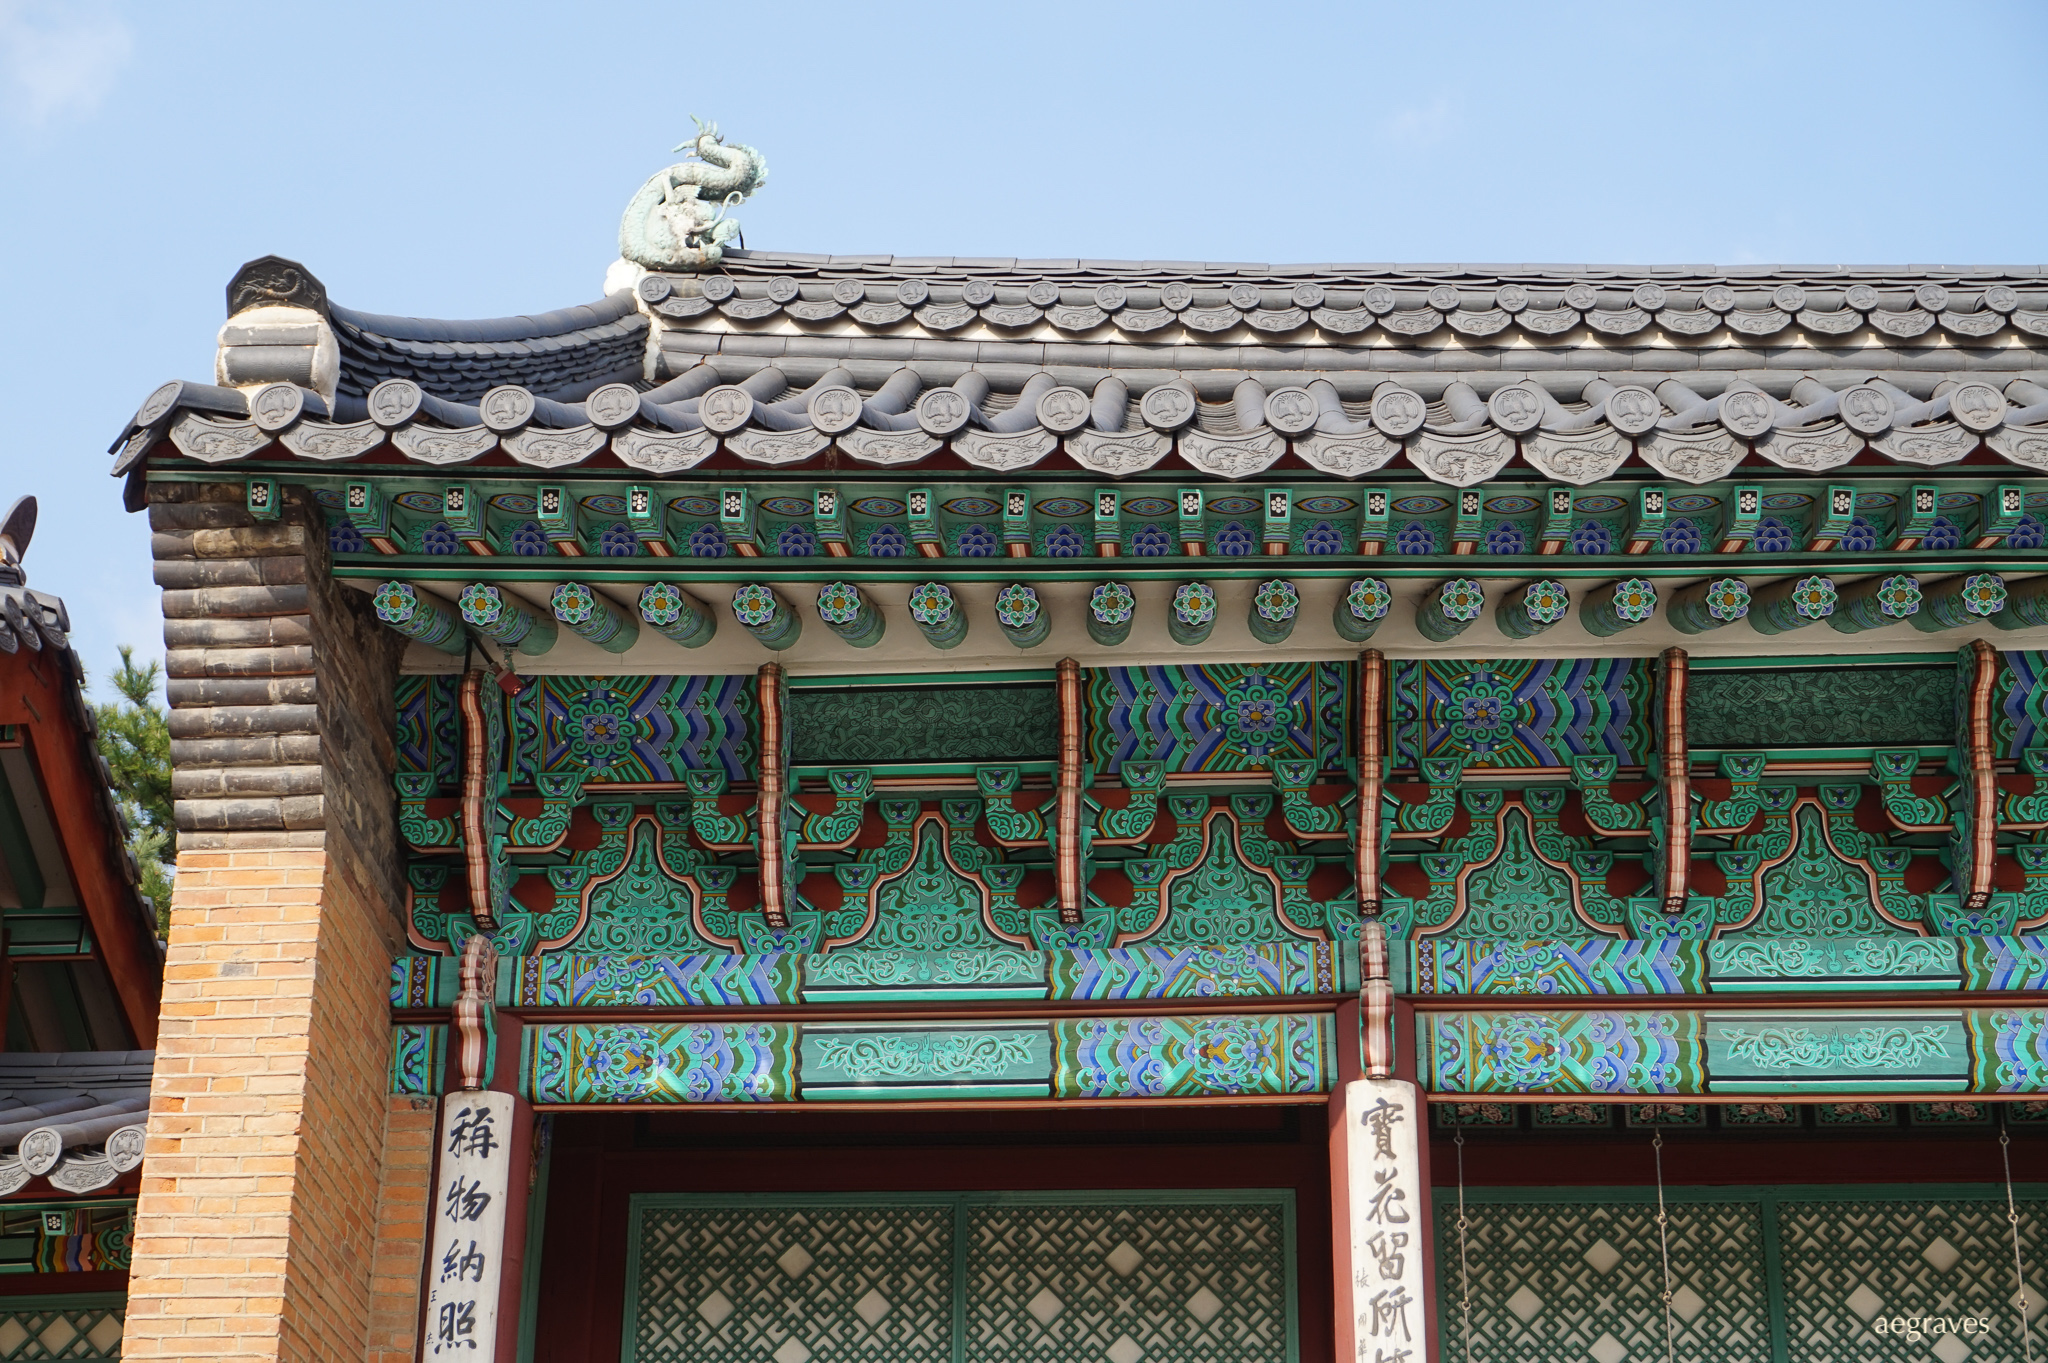 detail from a Korean historical building in Seoul by A.E. Graves